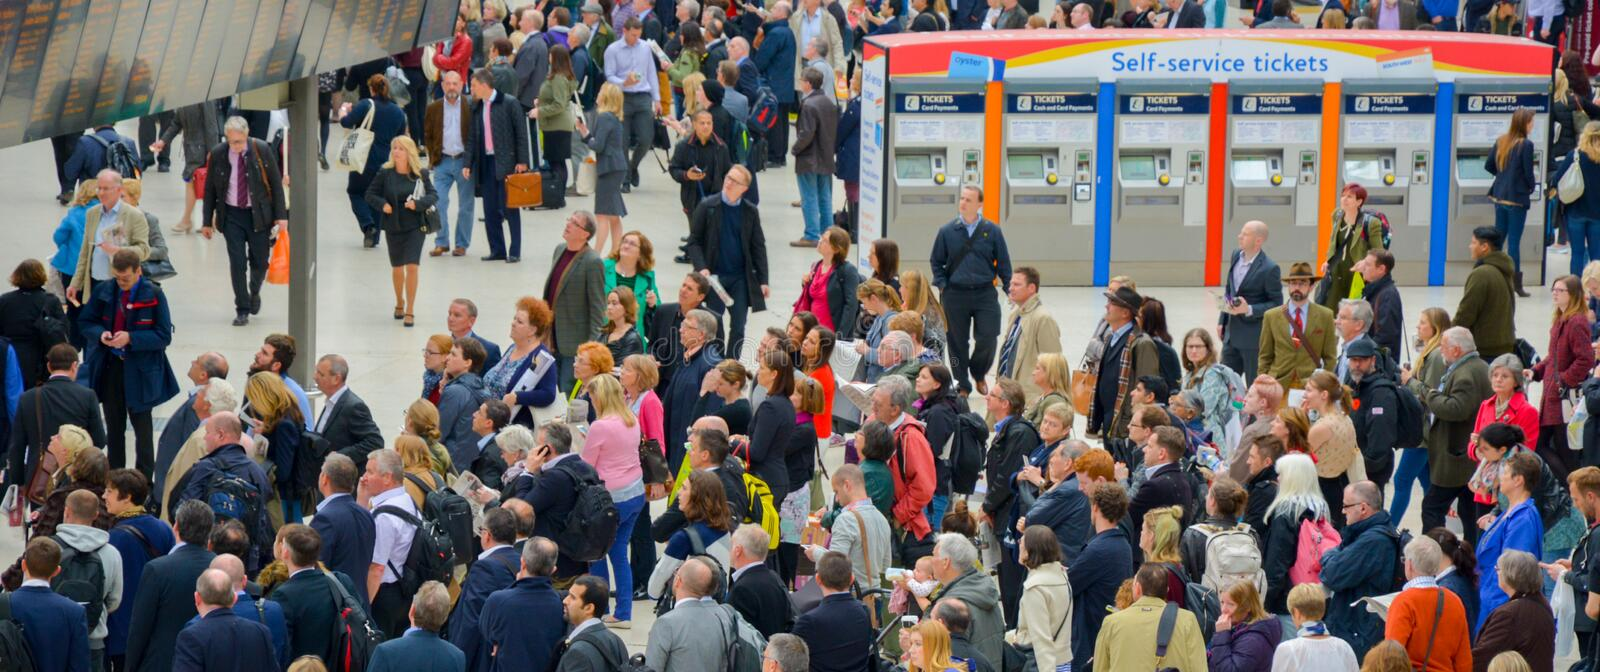 Rush hour crowds at Waterloo Train Station London. A picture of commuters at rush hour on Waterloo station checking the train timetables stock image